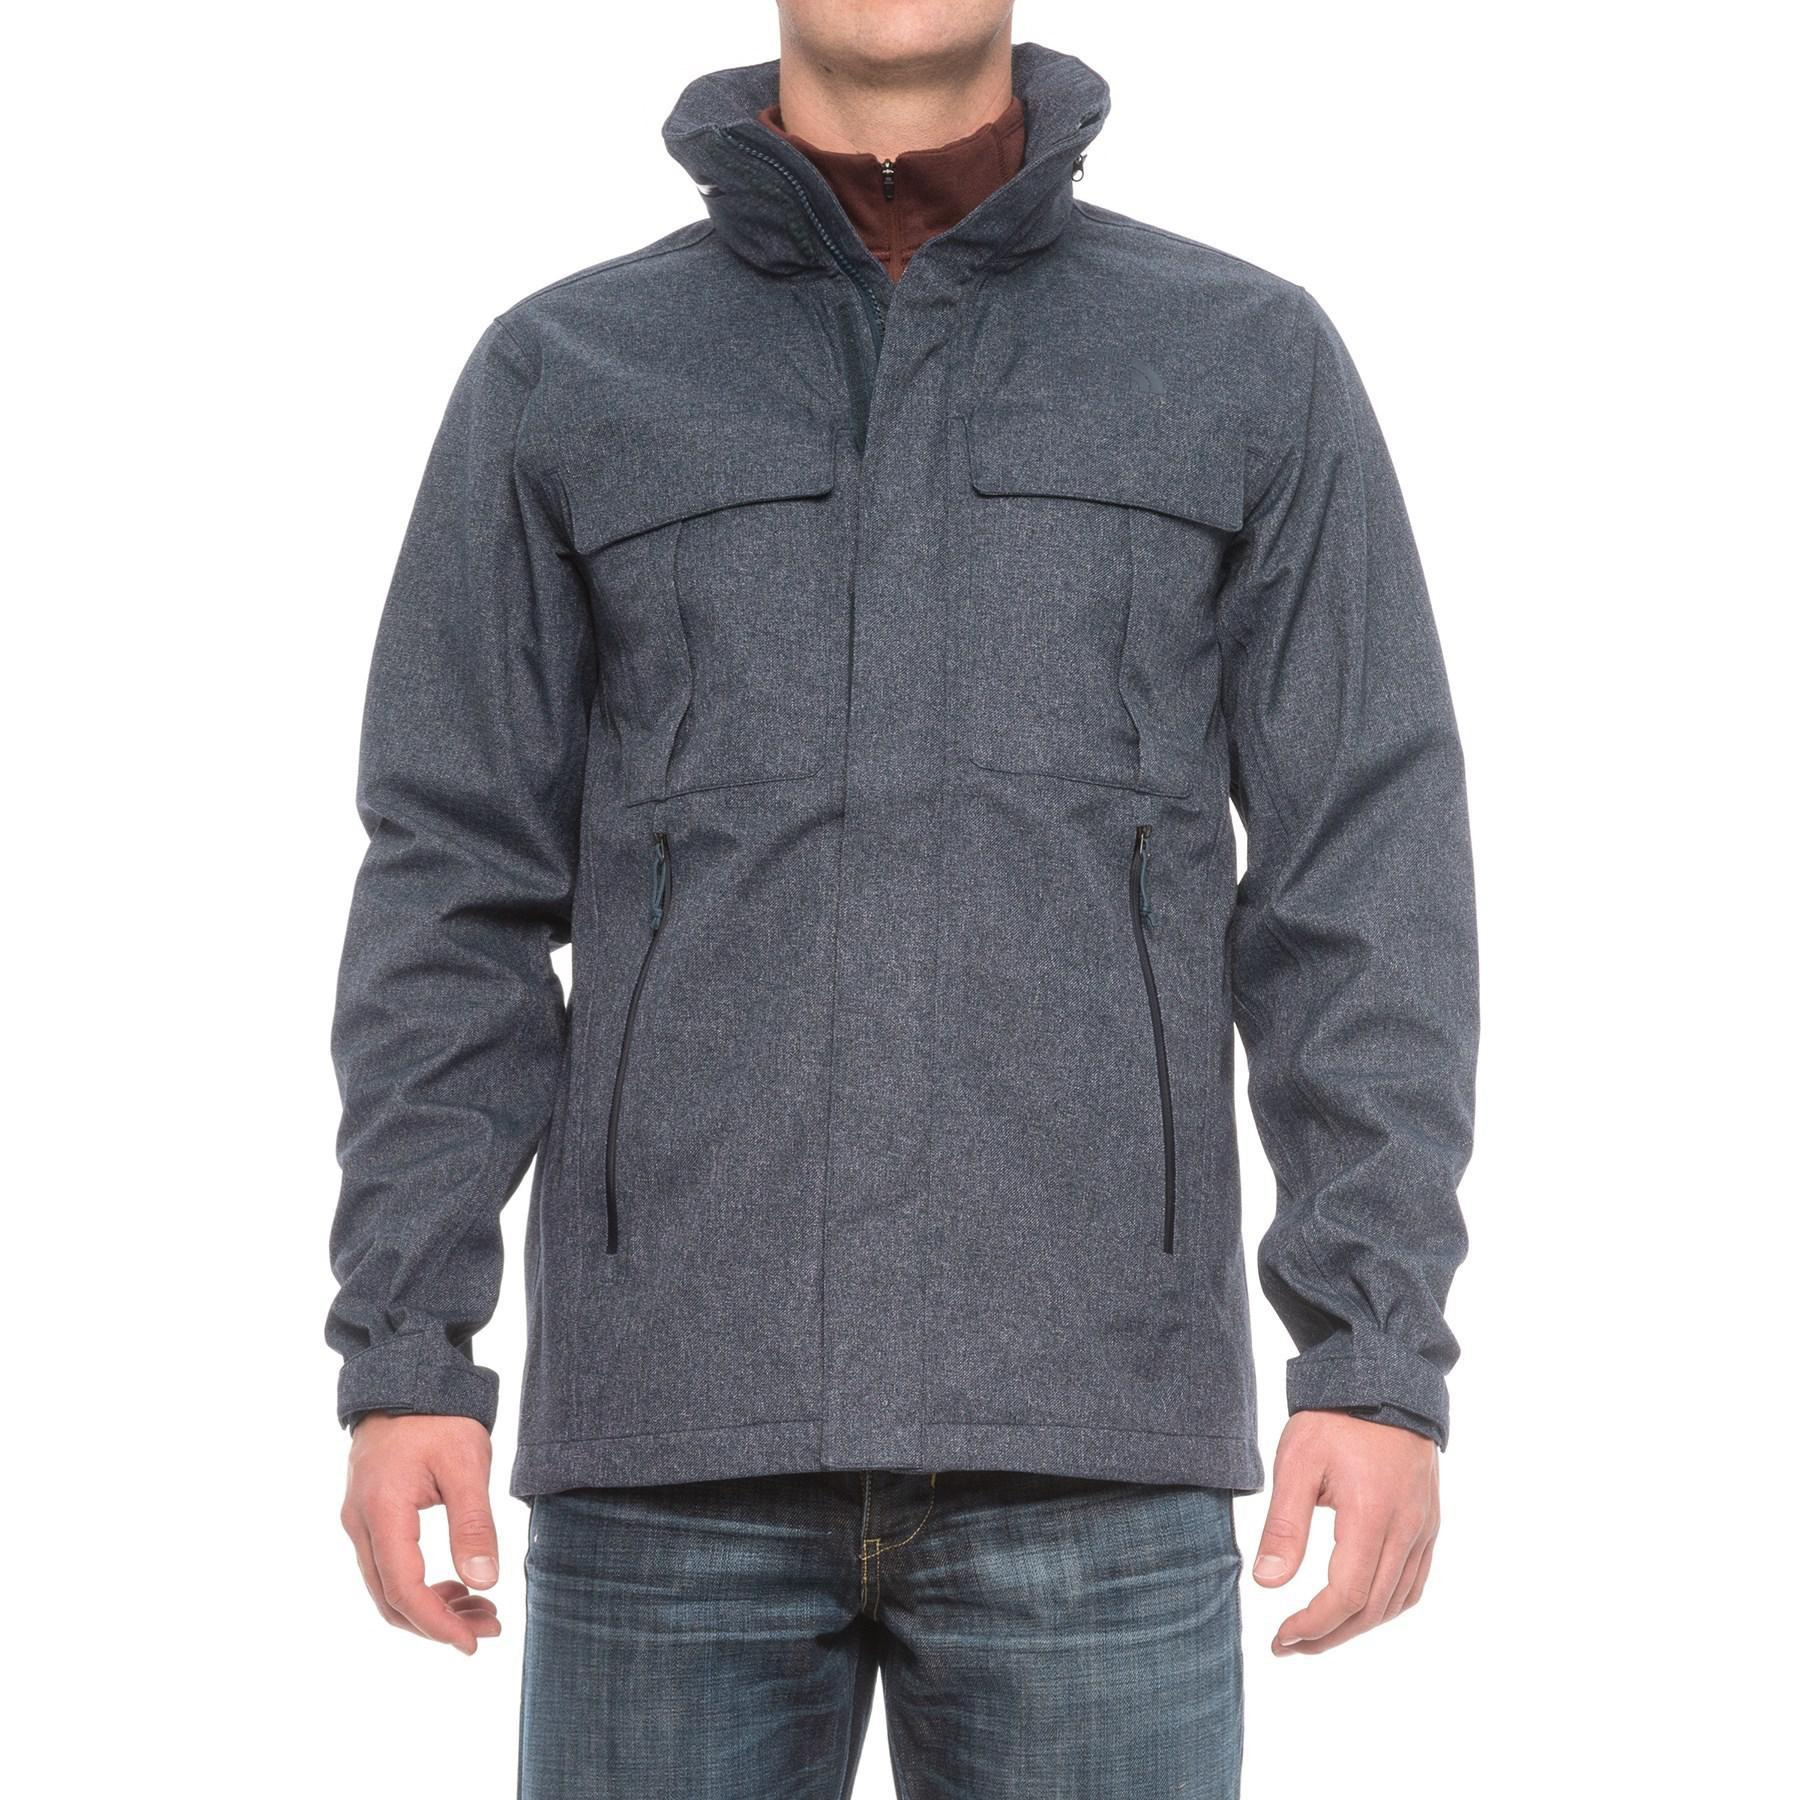 09f0d2ac8 The North Face Kassler Field Jacket in Blue for Men - Lyst